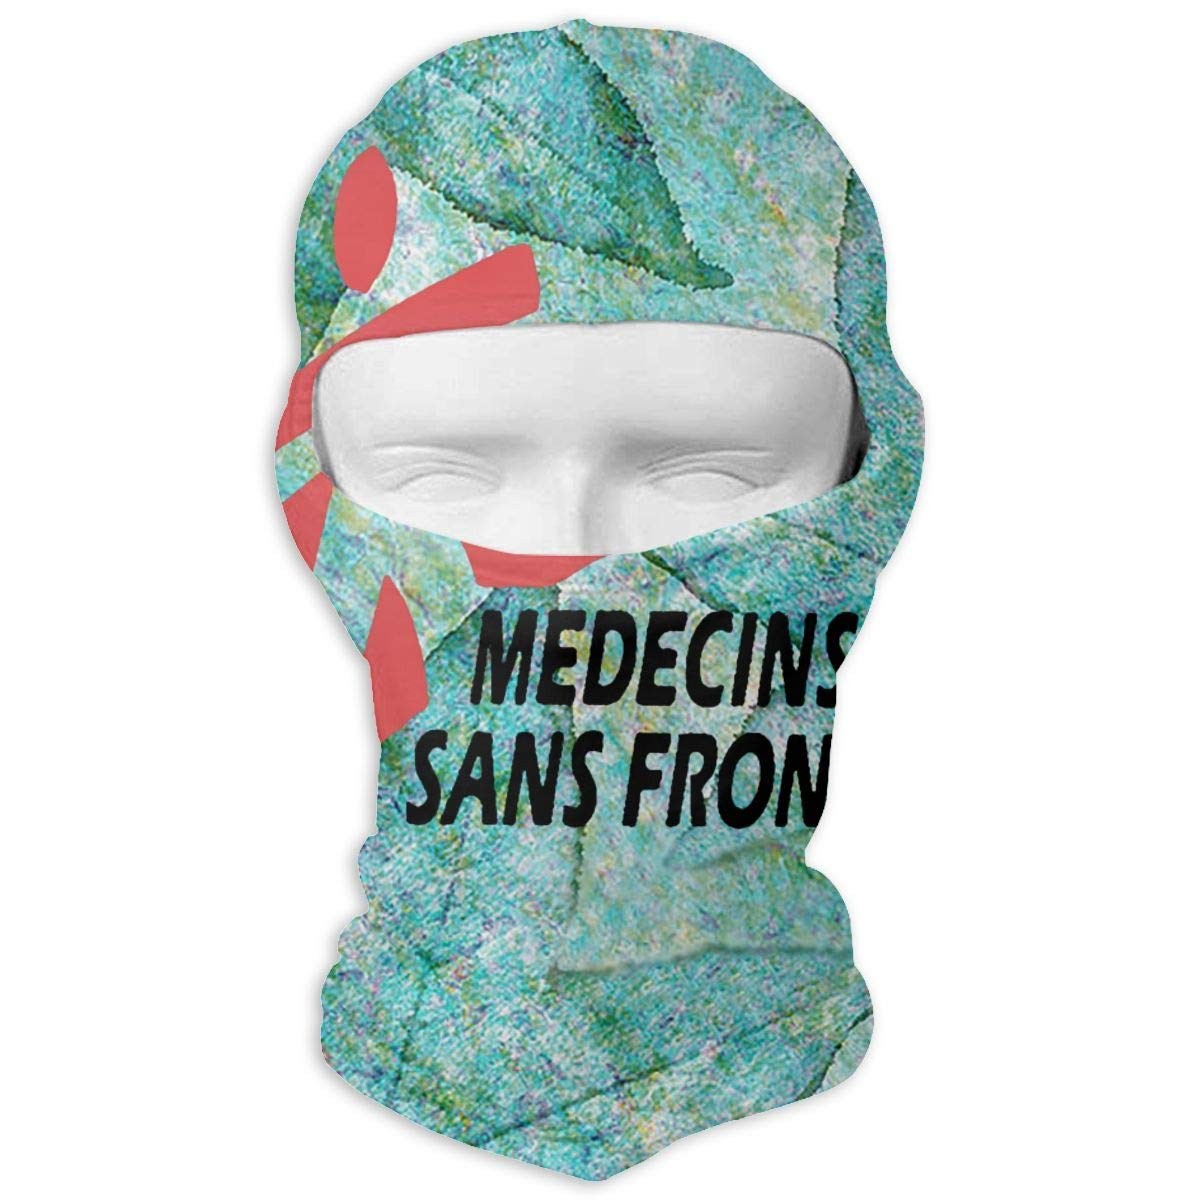 Medecins Sans Frontieres Winter Hiking Full Face Mask Dust Protection Head Hood for Men and Women Gxdchfj